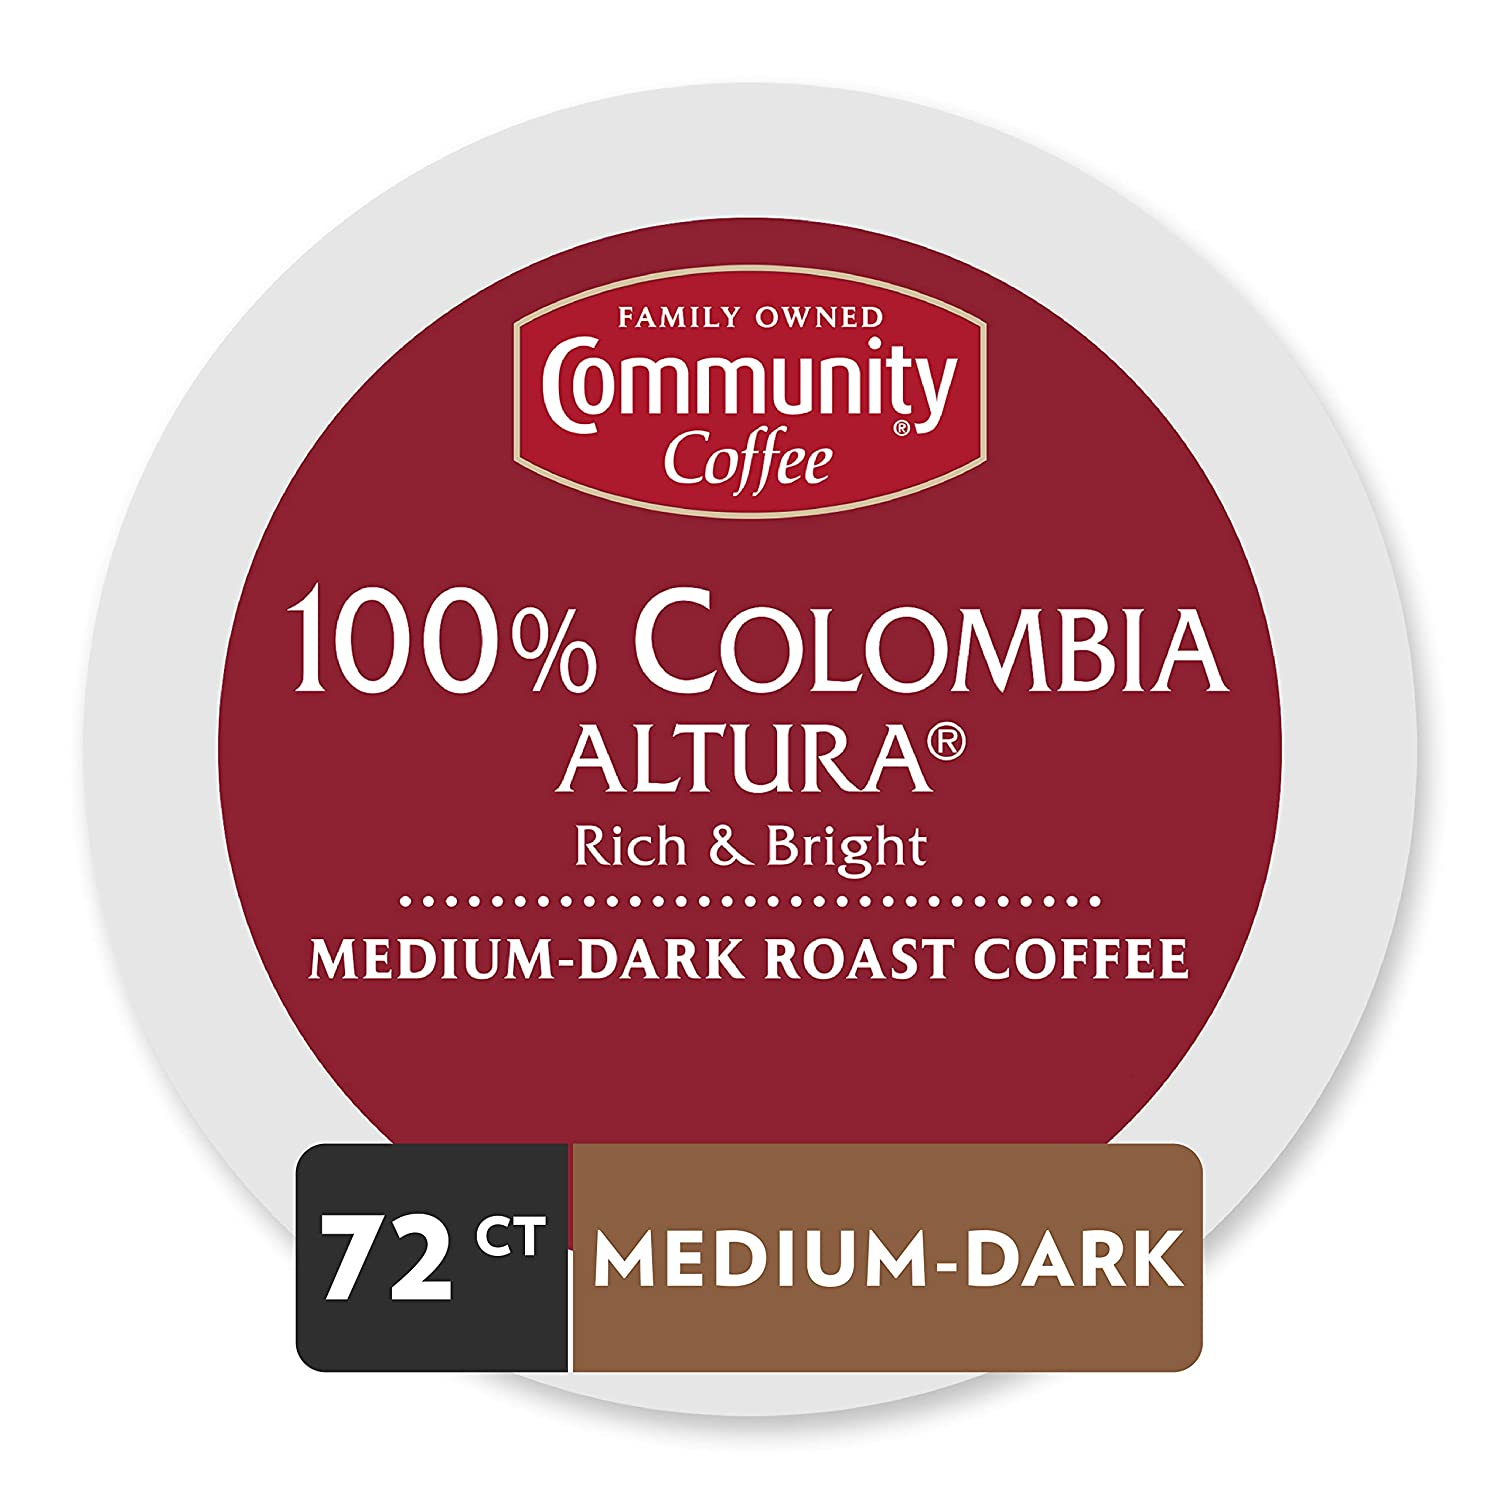 Community Coffee Colombia Altura Medium Dark Roast Single Serve, 72 Ct Box, Compatible with Keurig 2.0 K Cup Brewers, Medium Full Body Rich Bright Taste, 100% Arabica Coffee Beans